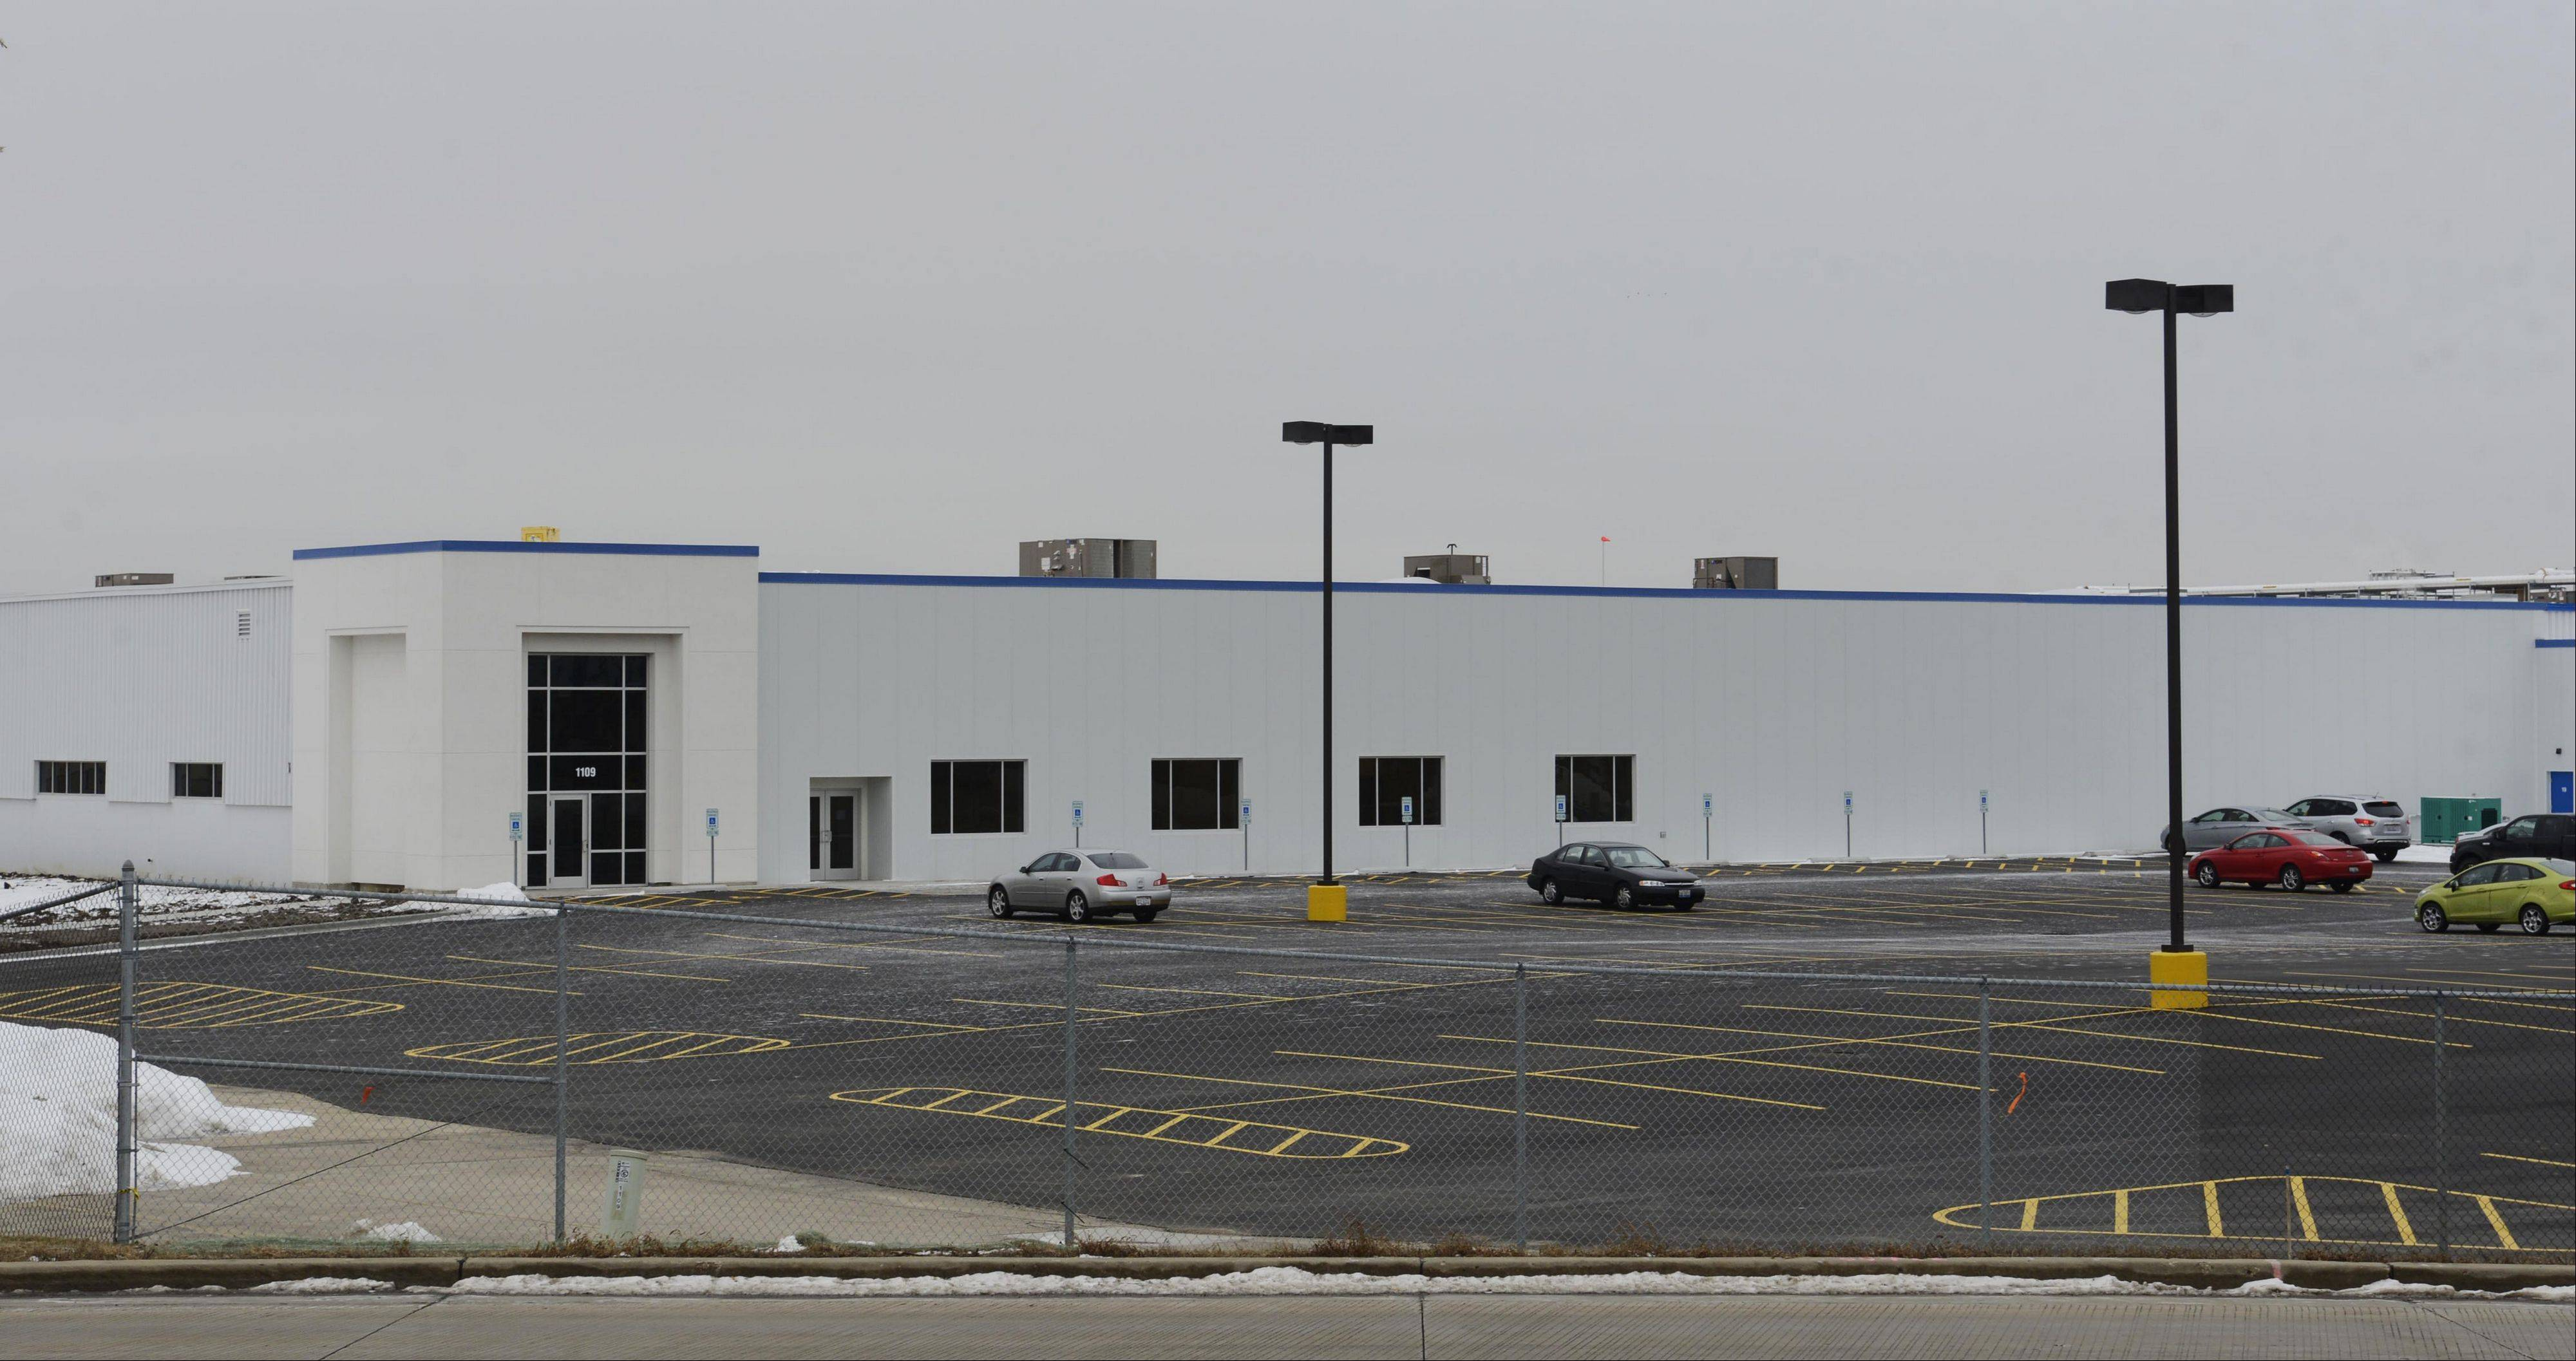 A new Chiquita Brands/Fresh Express plant is about to open on the refurbished former site of Duraco Products in Streamwood.